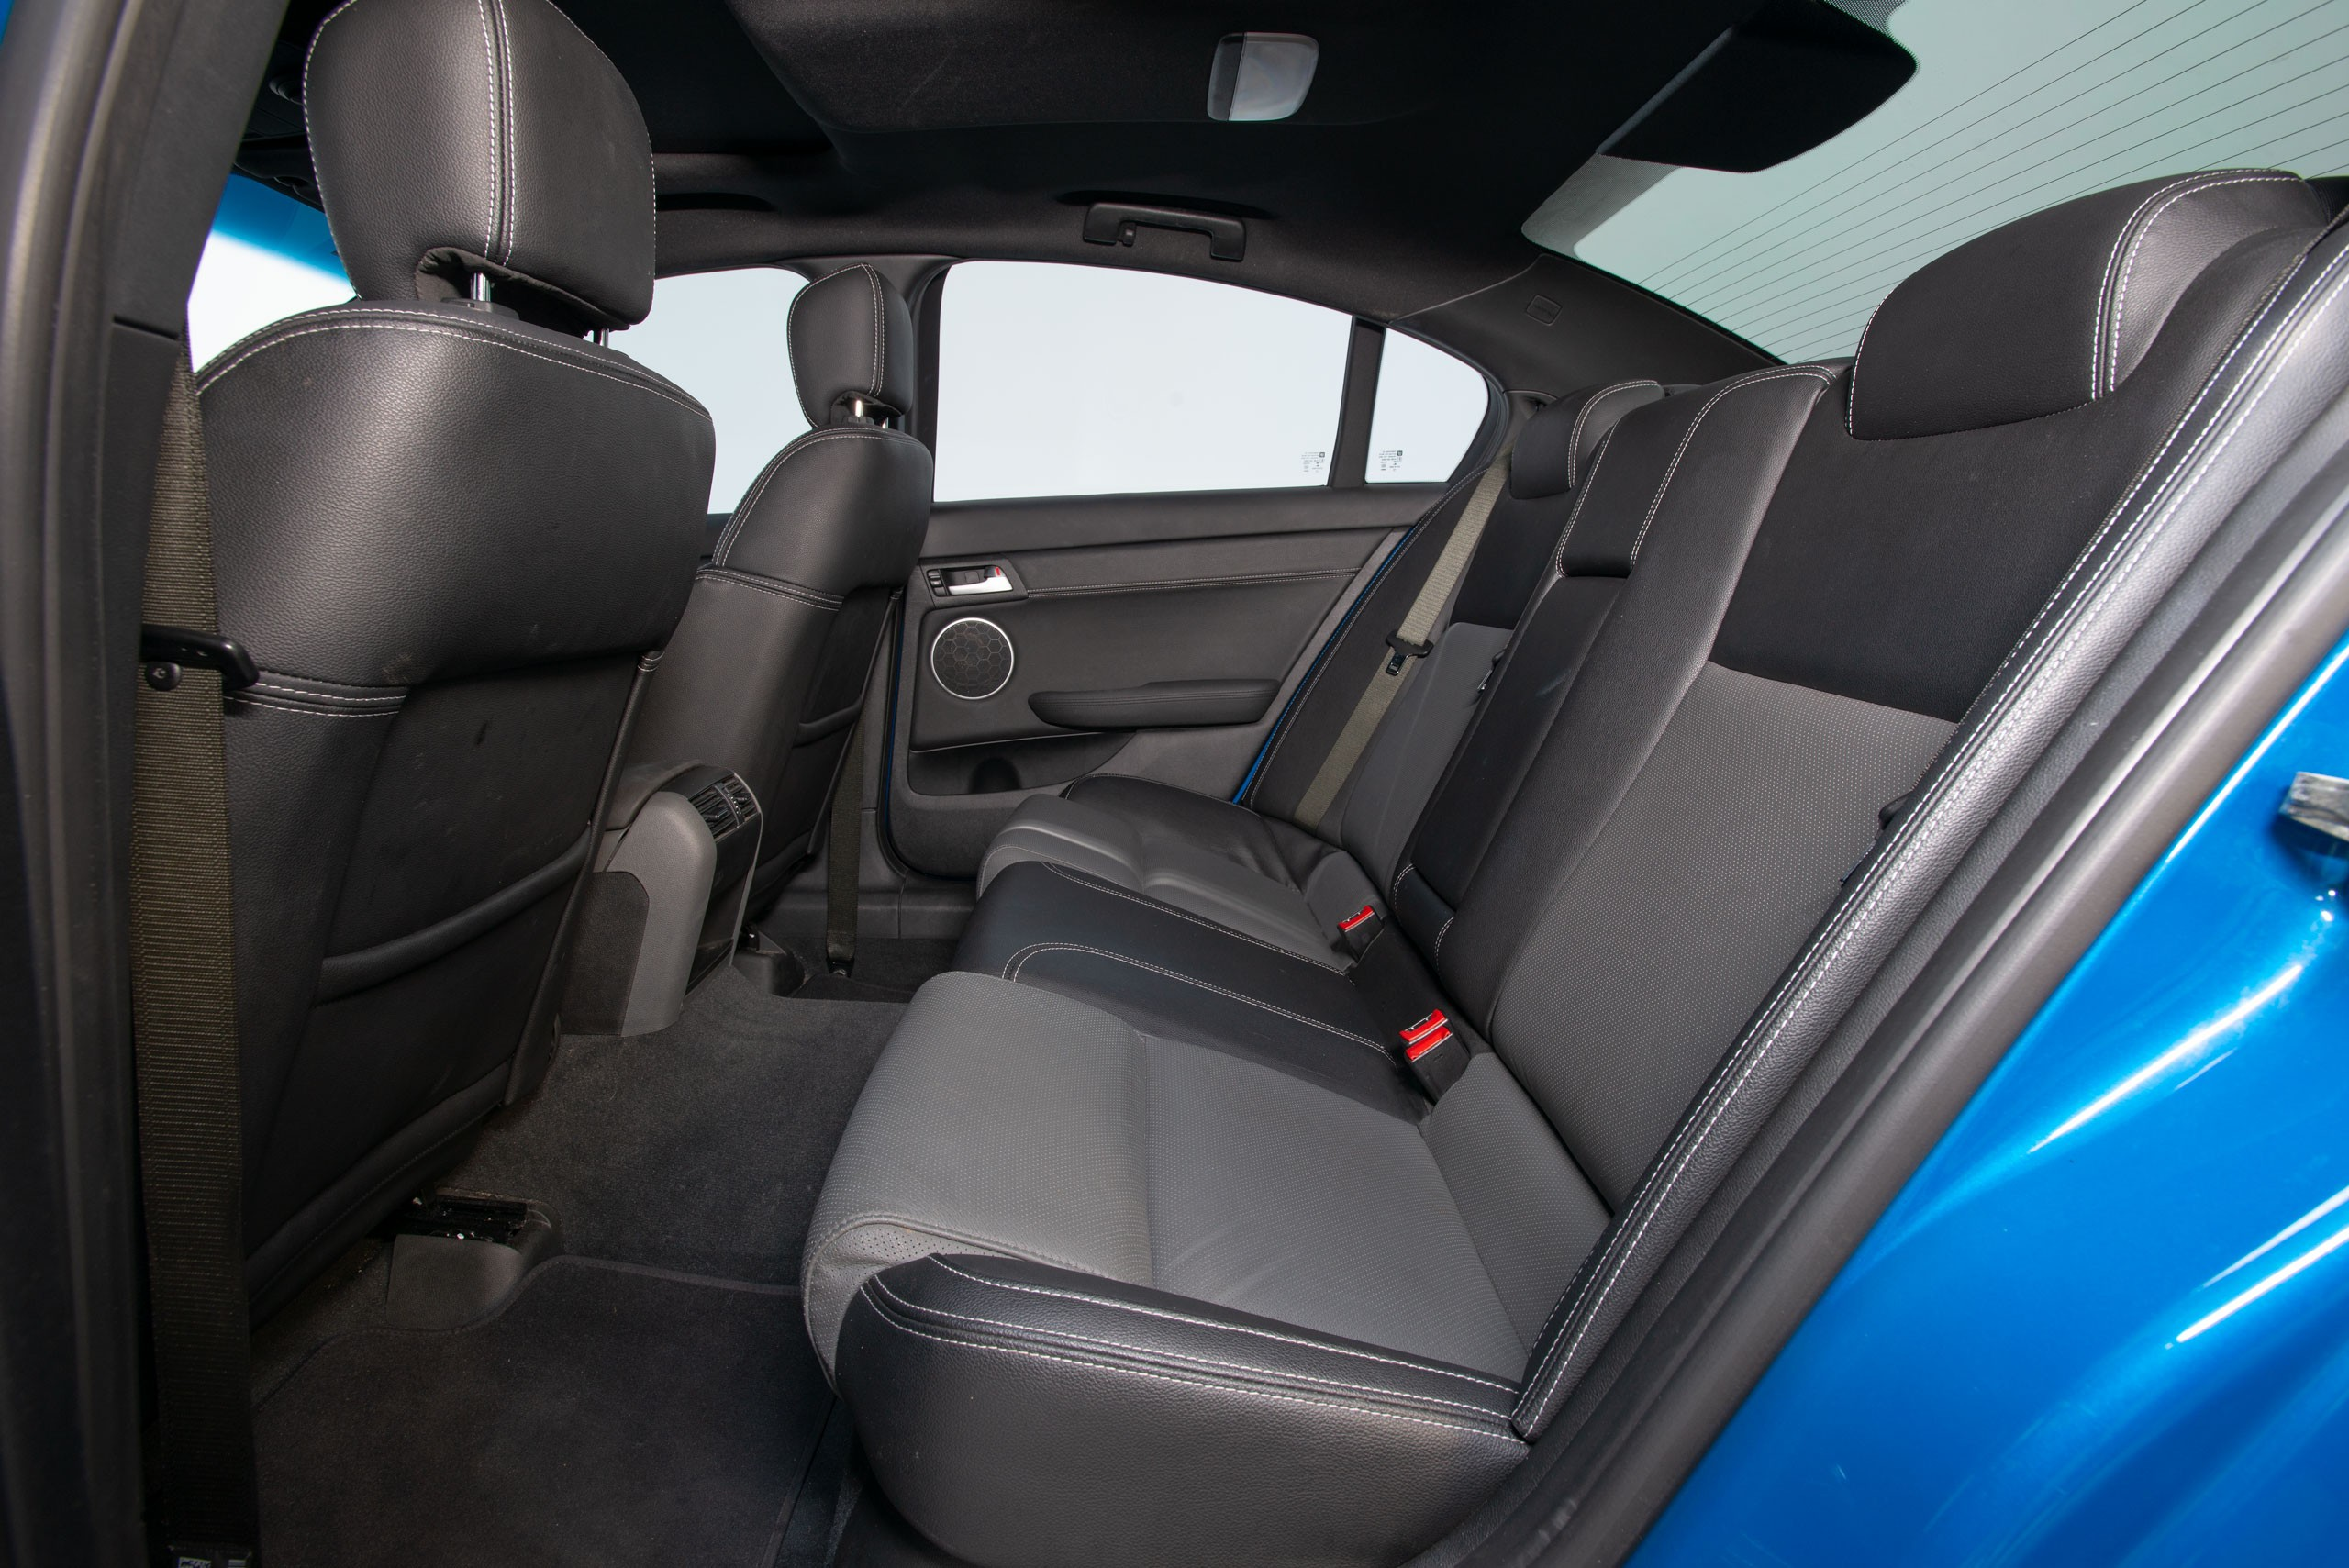 Image 10/10 of 2012 Holden Commodore SS V Z Series